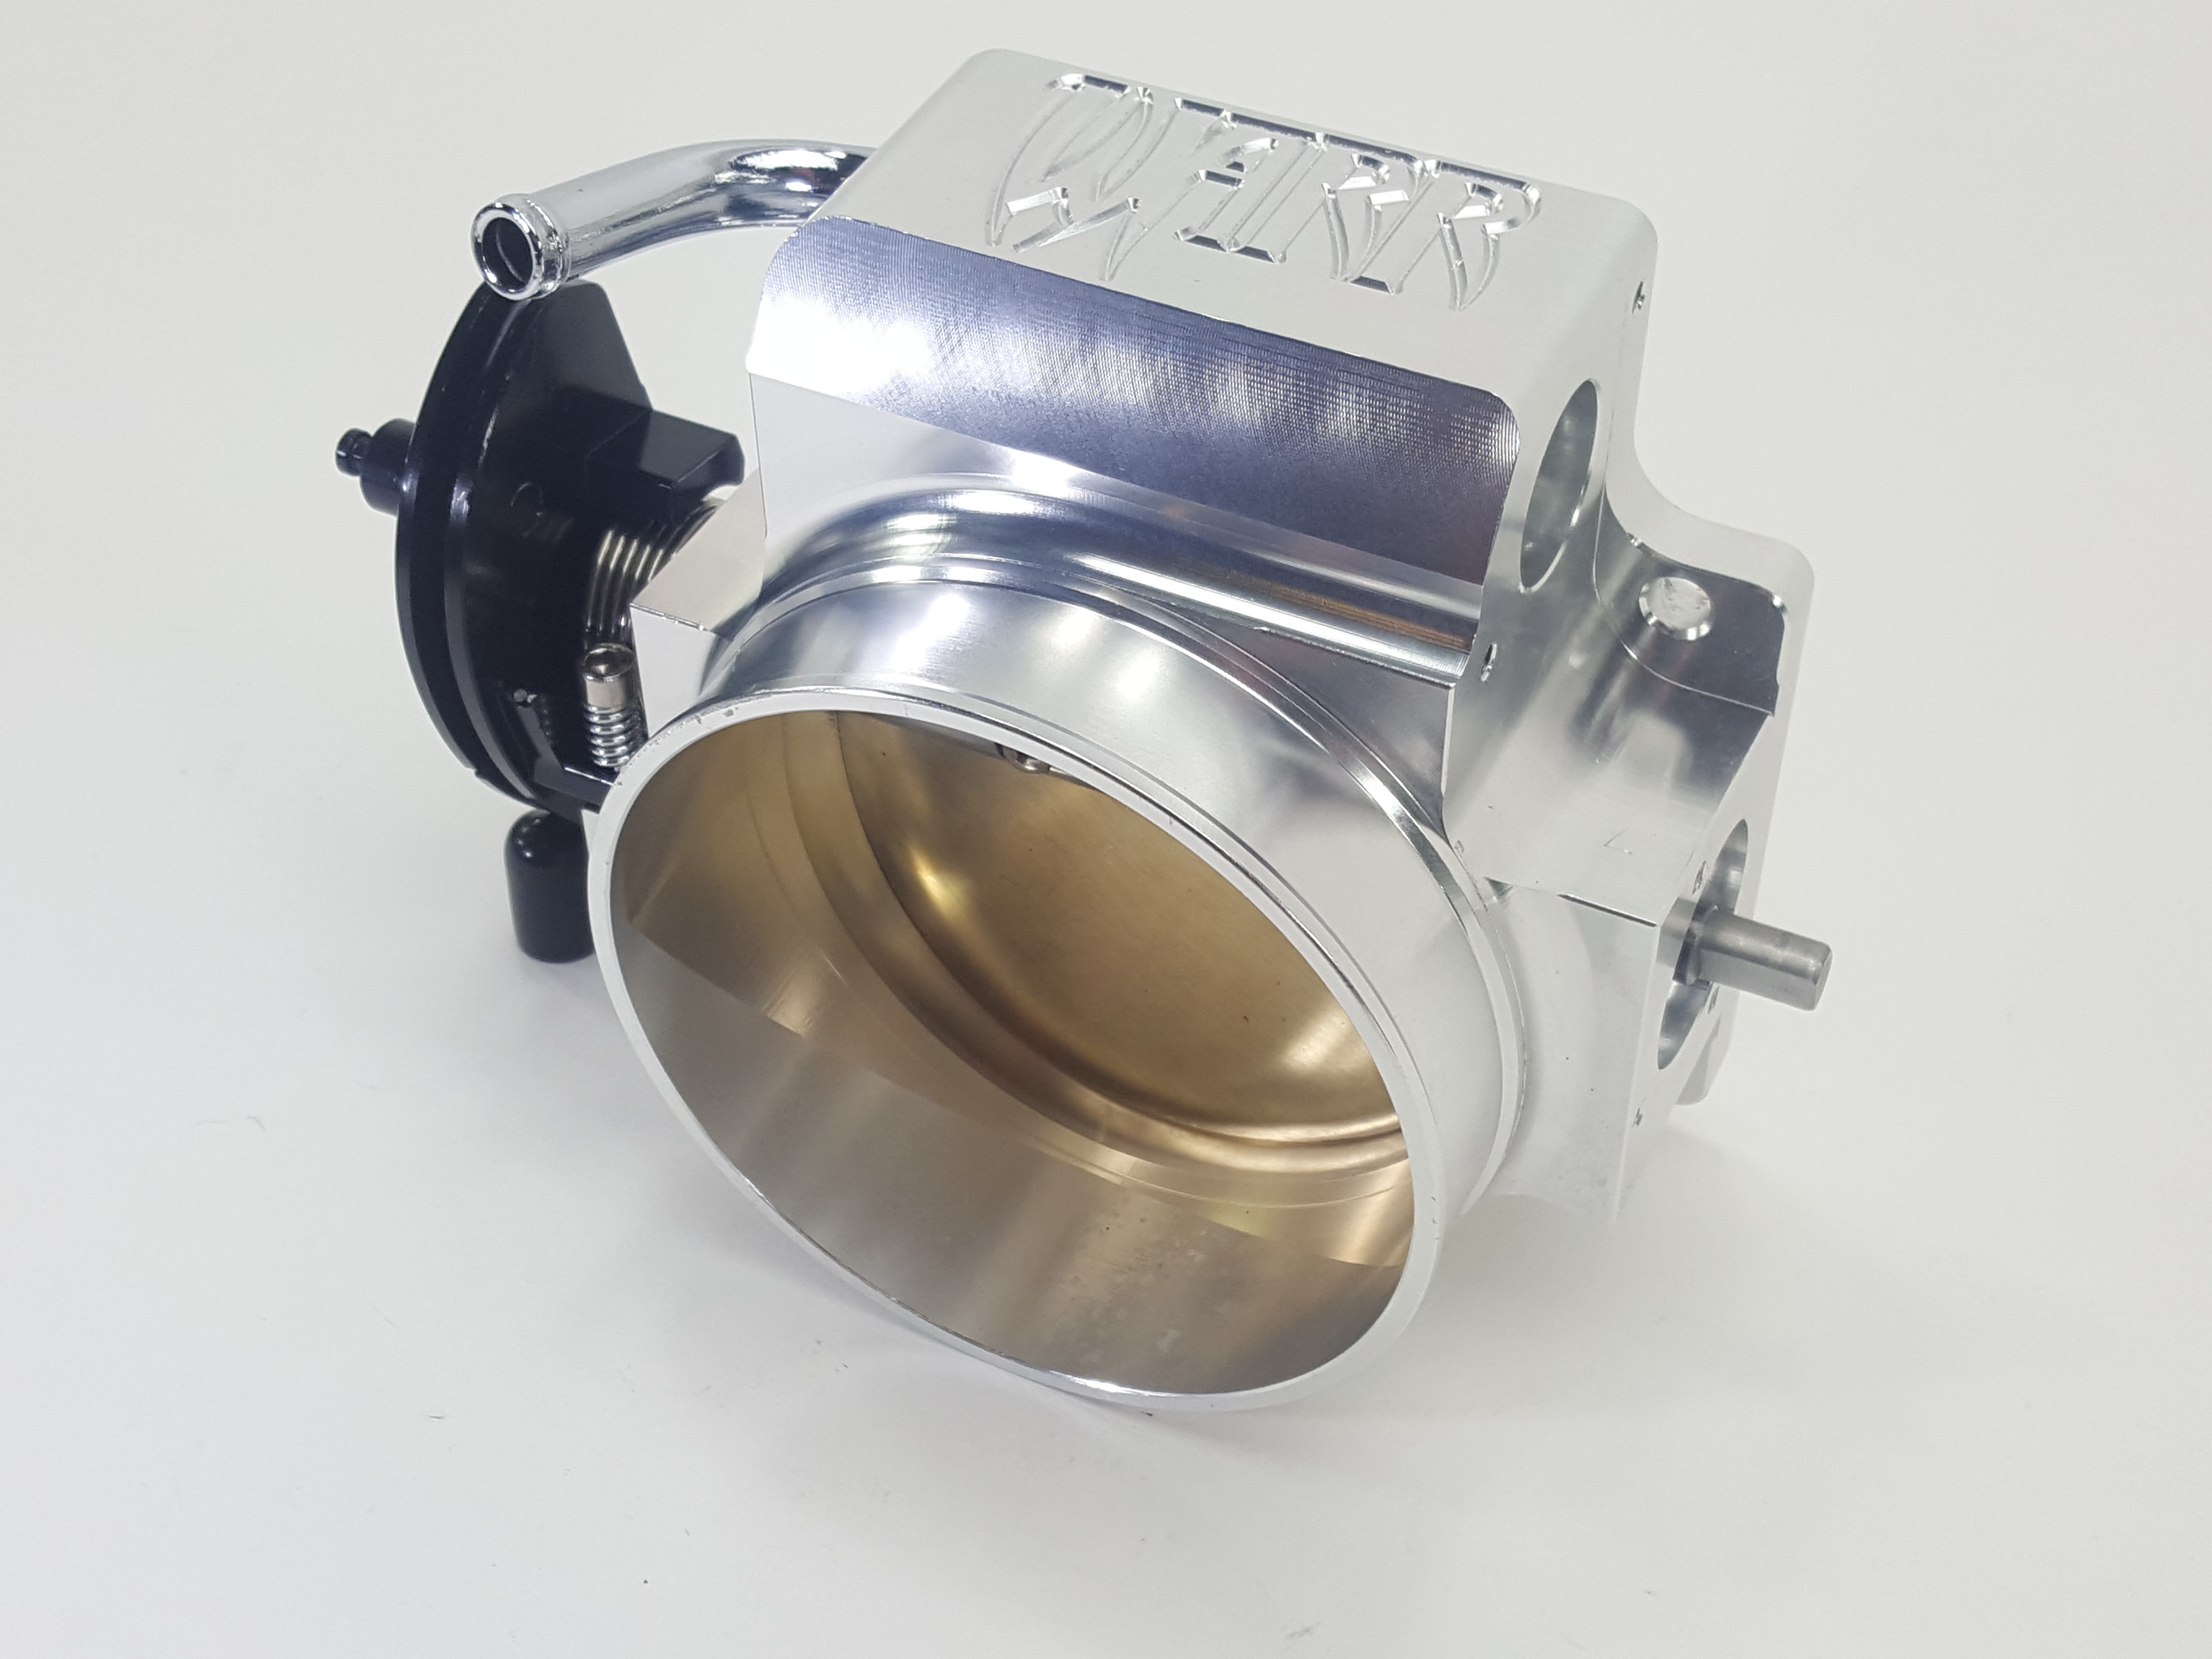 102mm LS Throttle Body - LS1 LS2 LS3 LS6 LSX